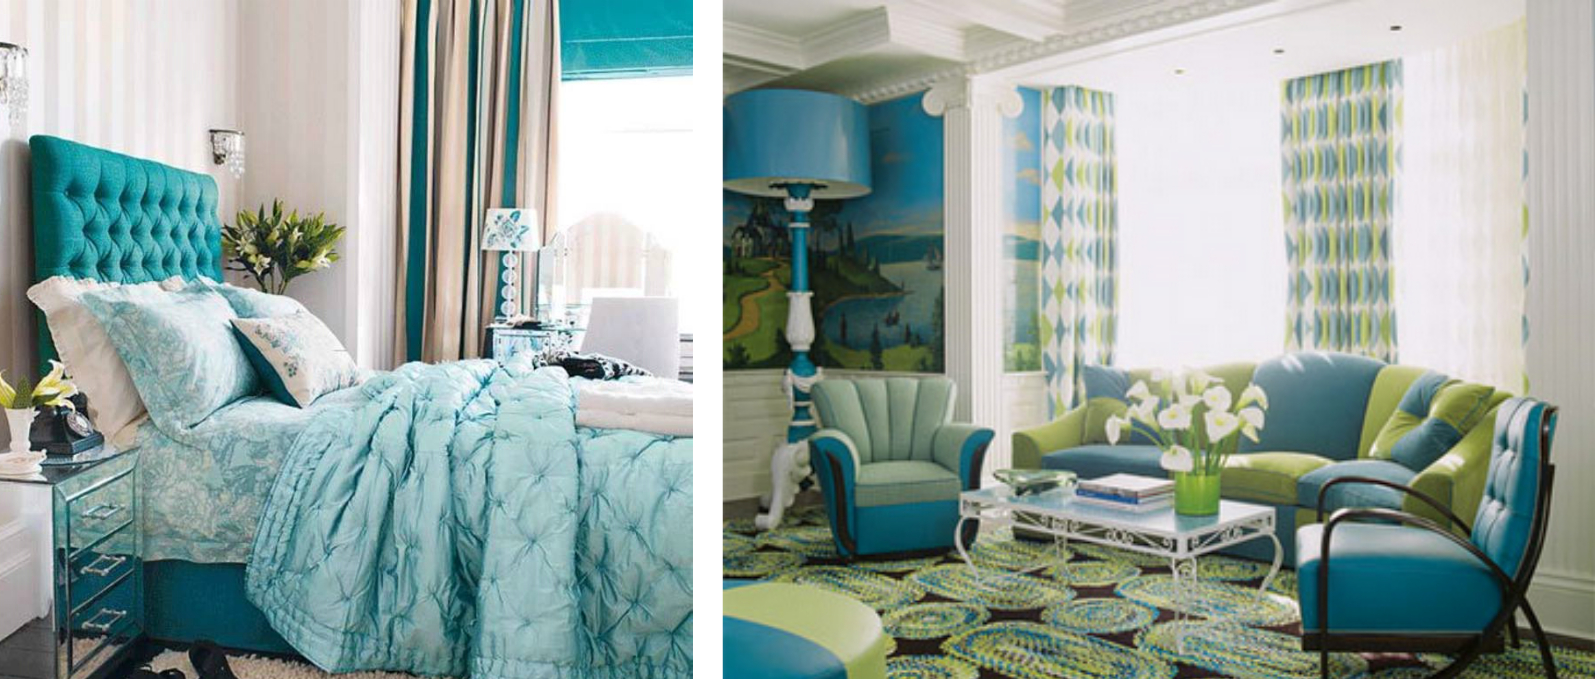 Decorate Home With Blue And Green My Decorative